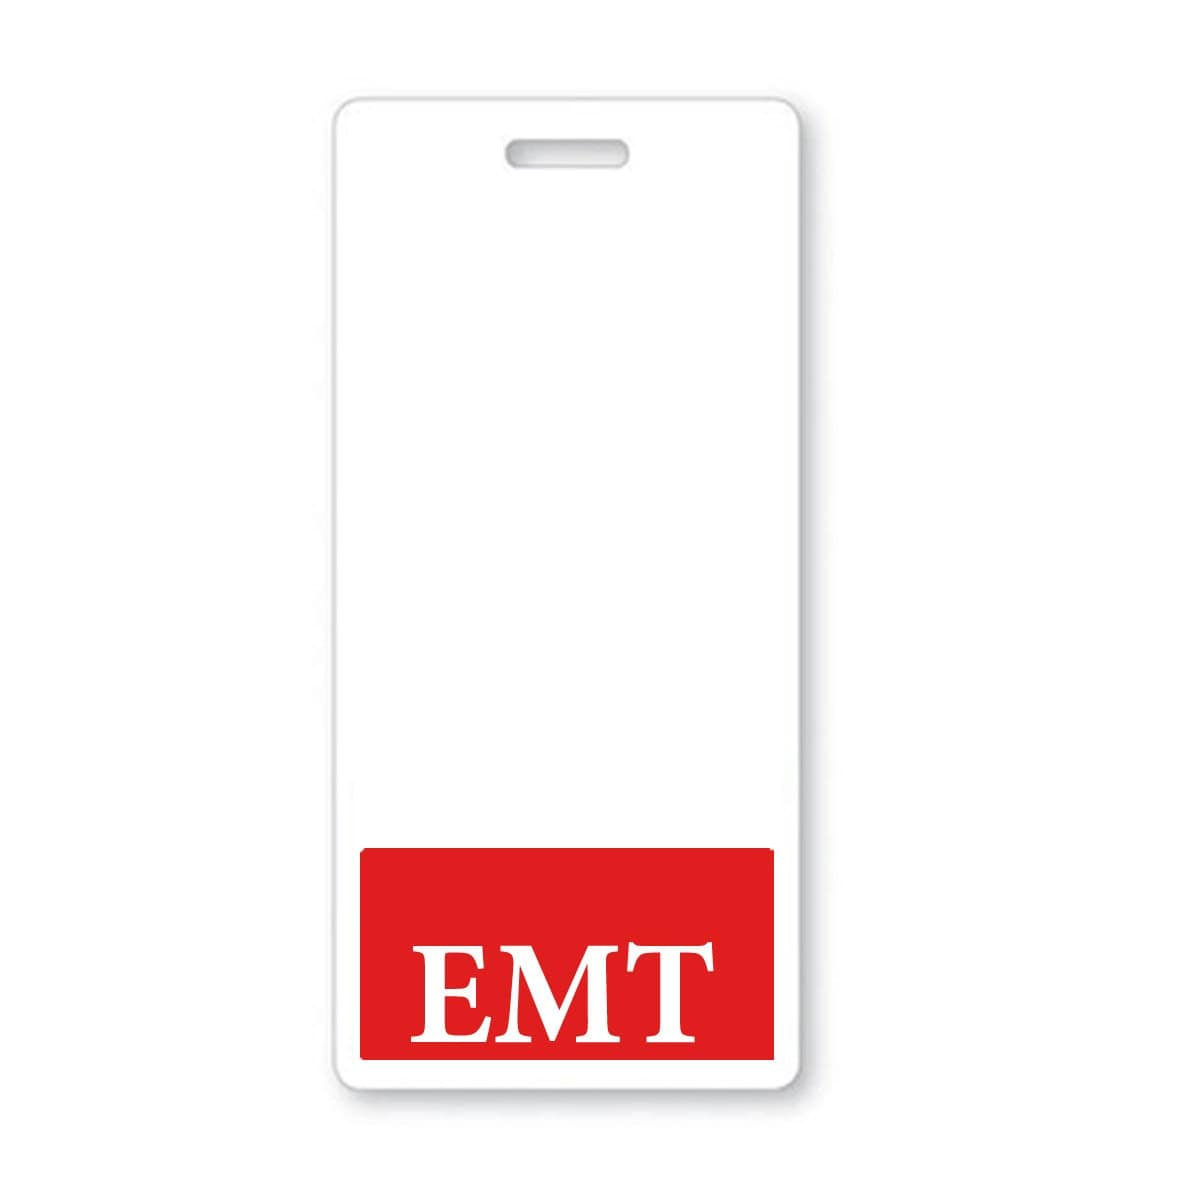 """EMT"" Emergency Medical Technician, Vertical Badge Buddy with Red Border"